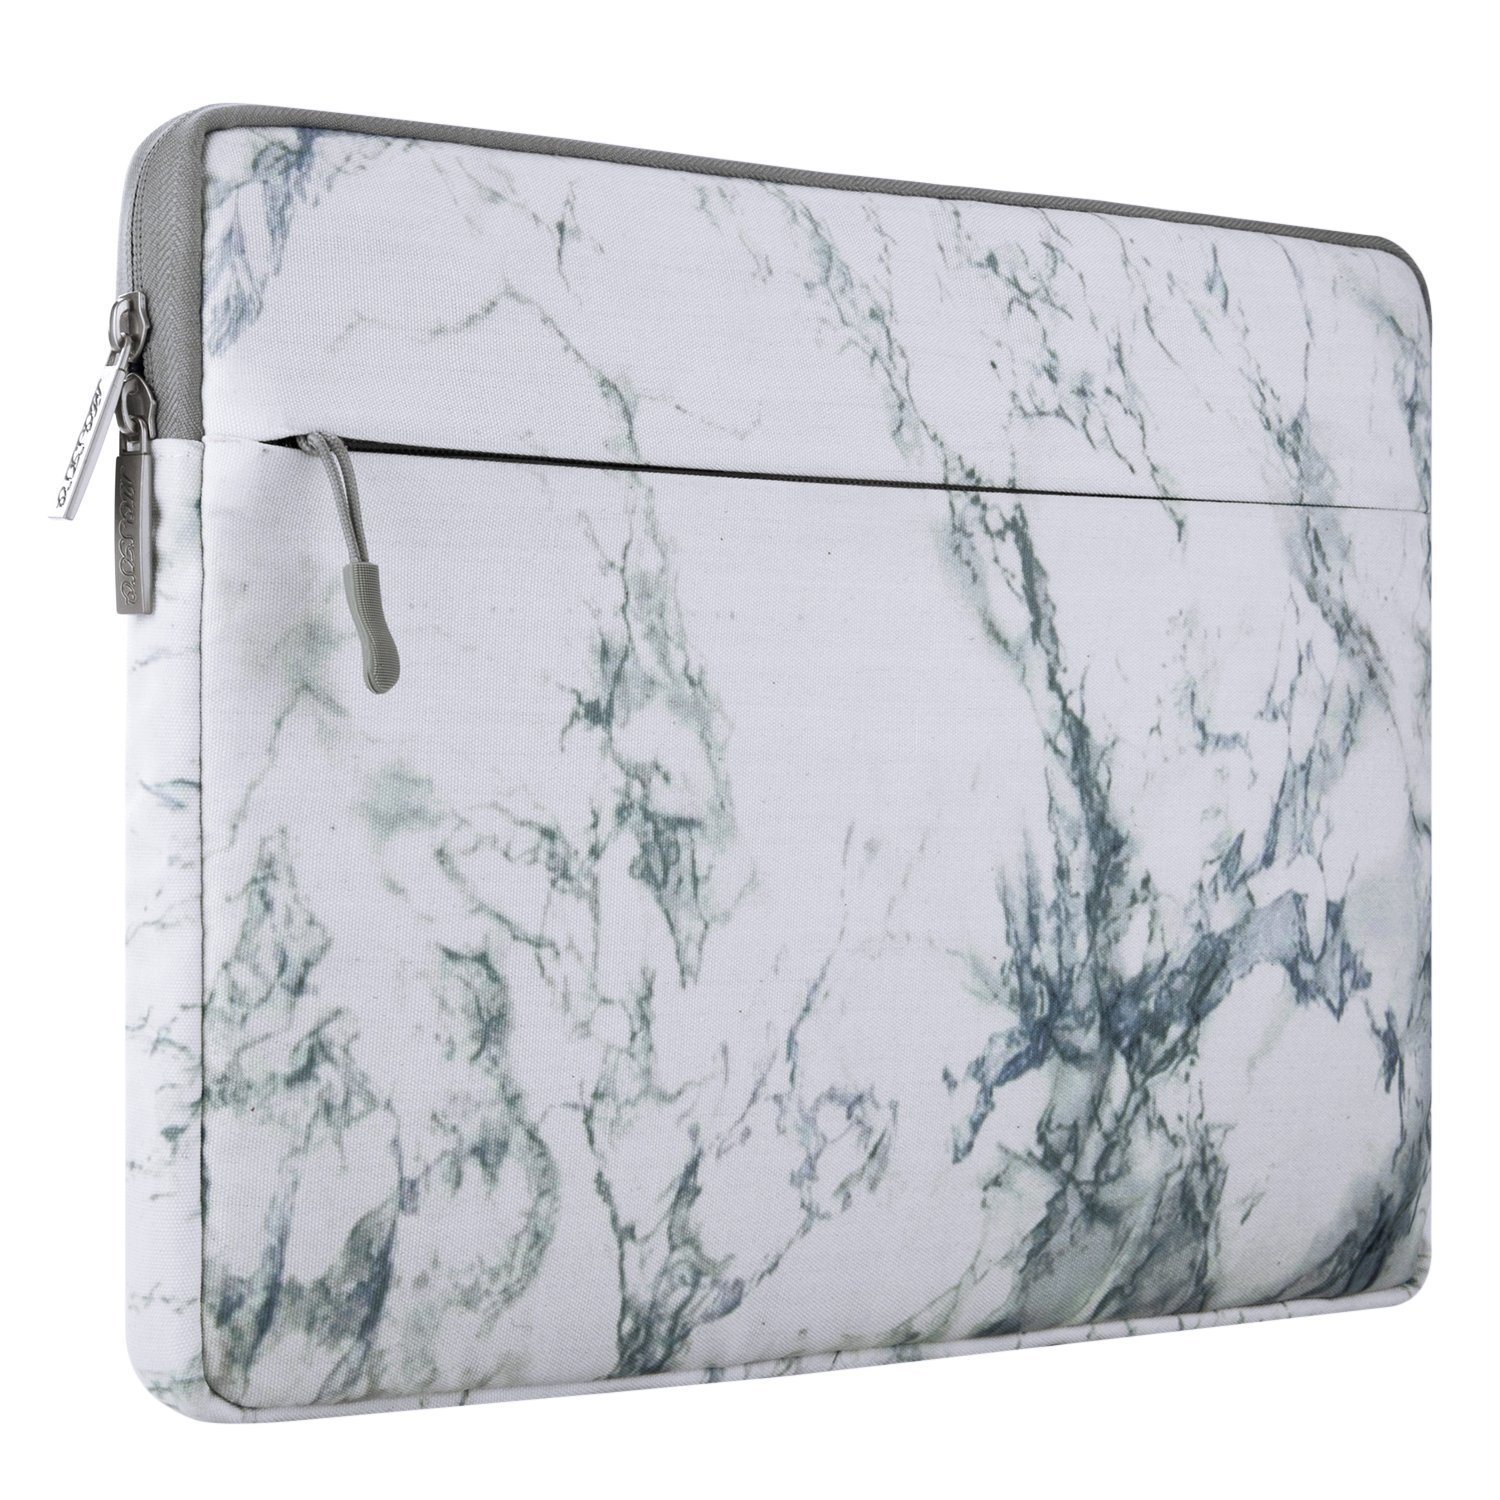 Mosiso Protective Laptop Sleeve for 15 Inch New MacBook Pro with Touch Bar A1990 & A1707 2018 2017 2016, Also Fit 14 Inch Notebook Computer Ultrabook, Canvas Fabric Carrying Bag Case Cover, White Marble Pattern